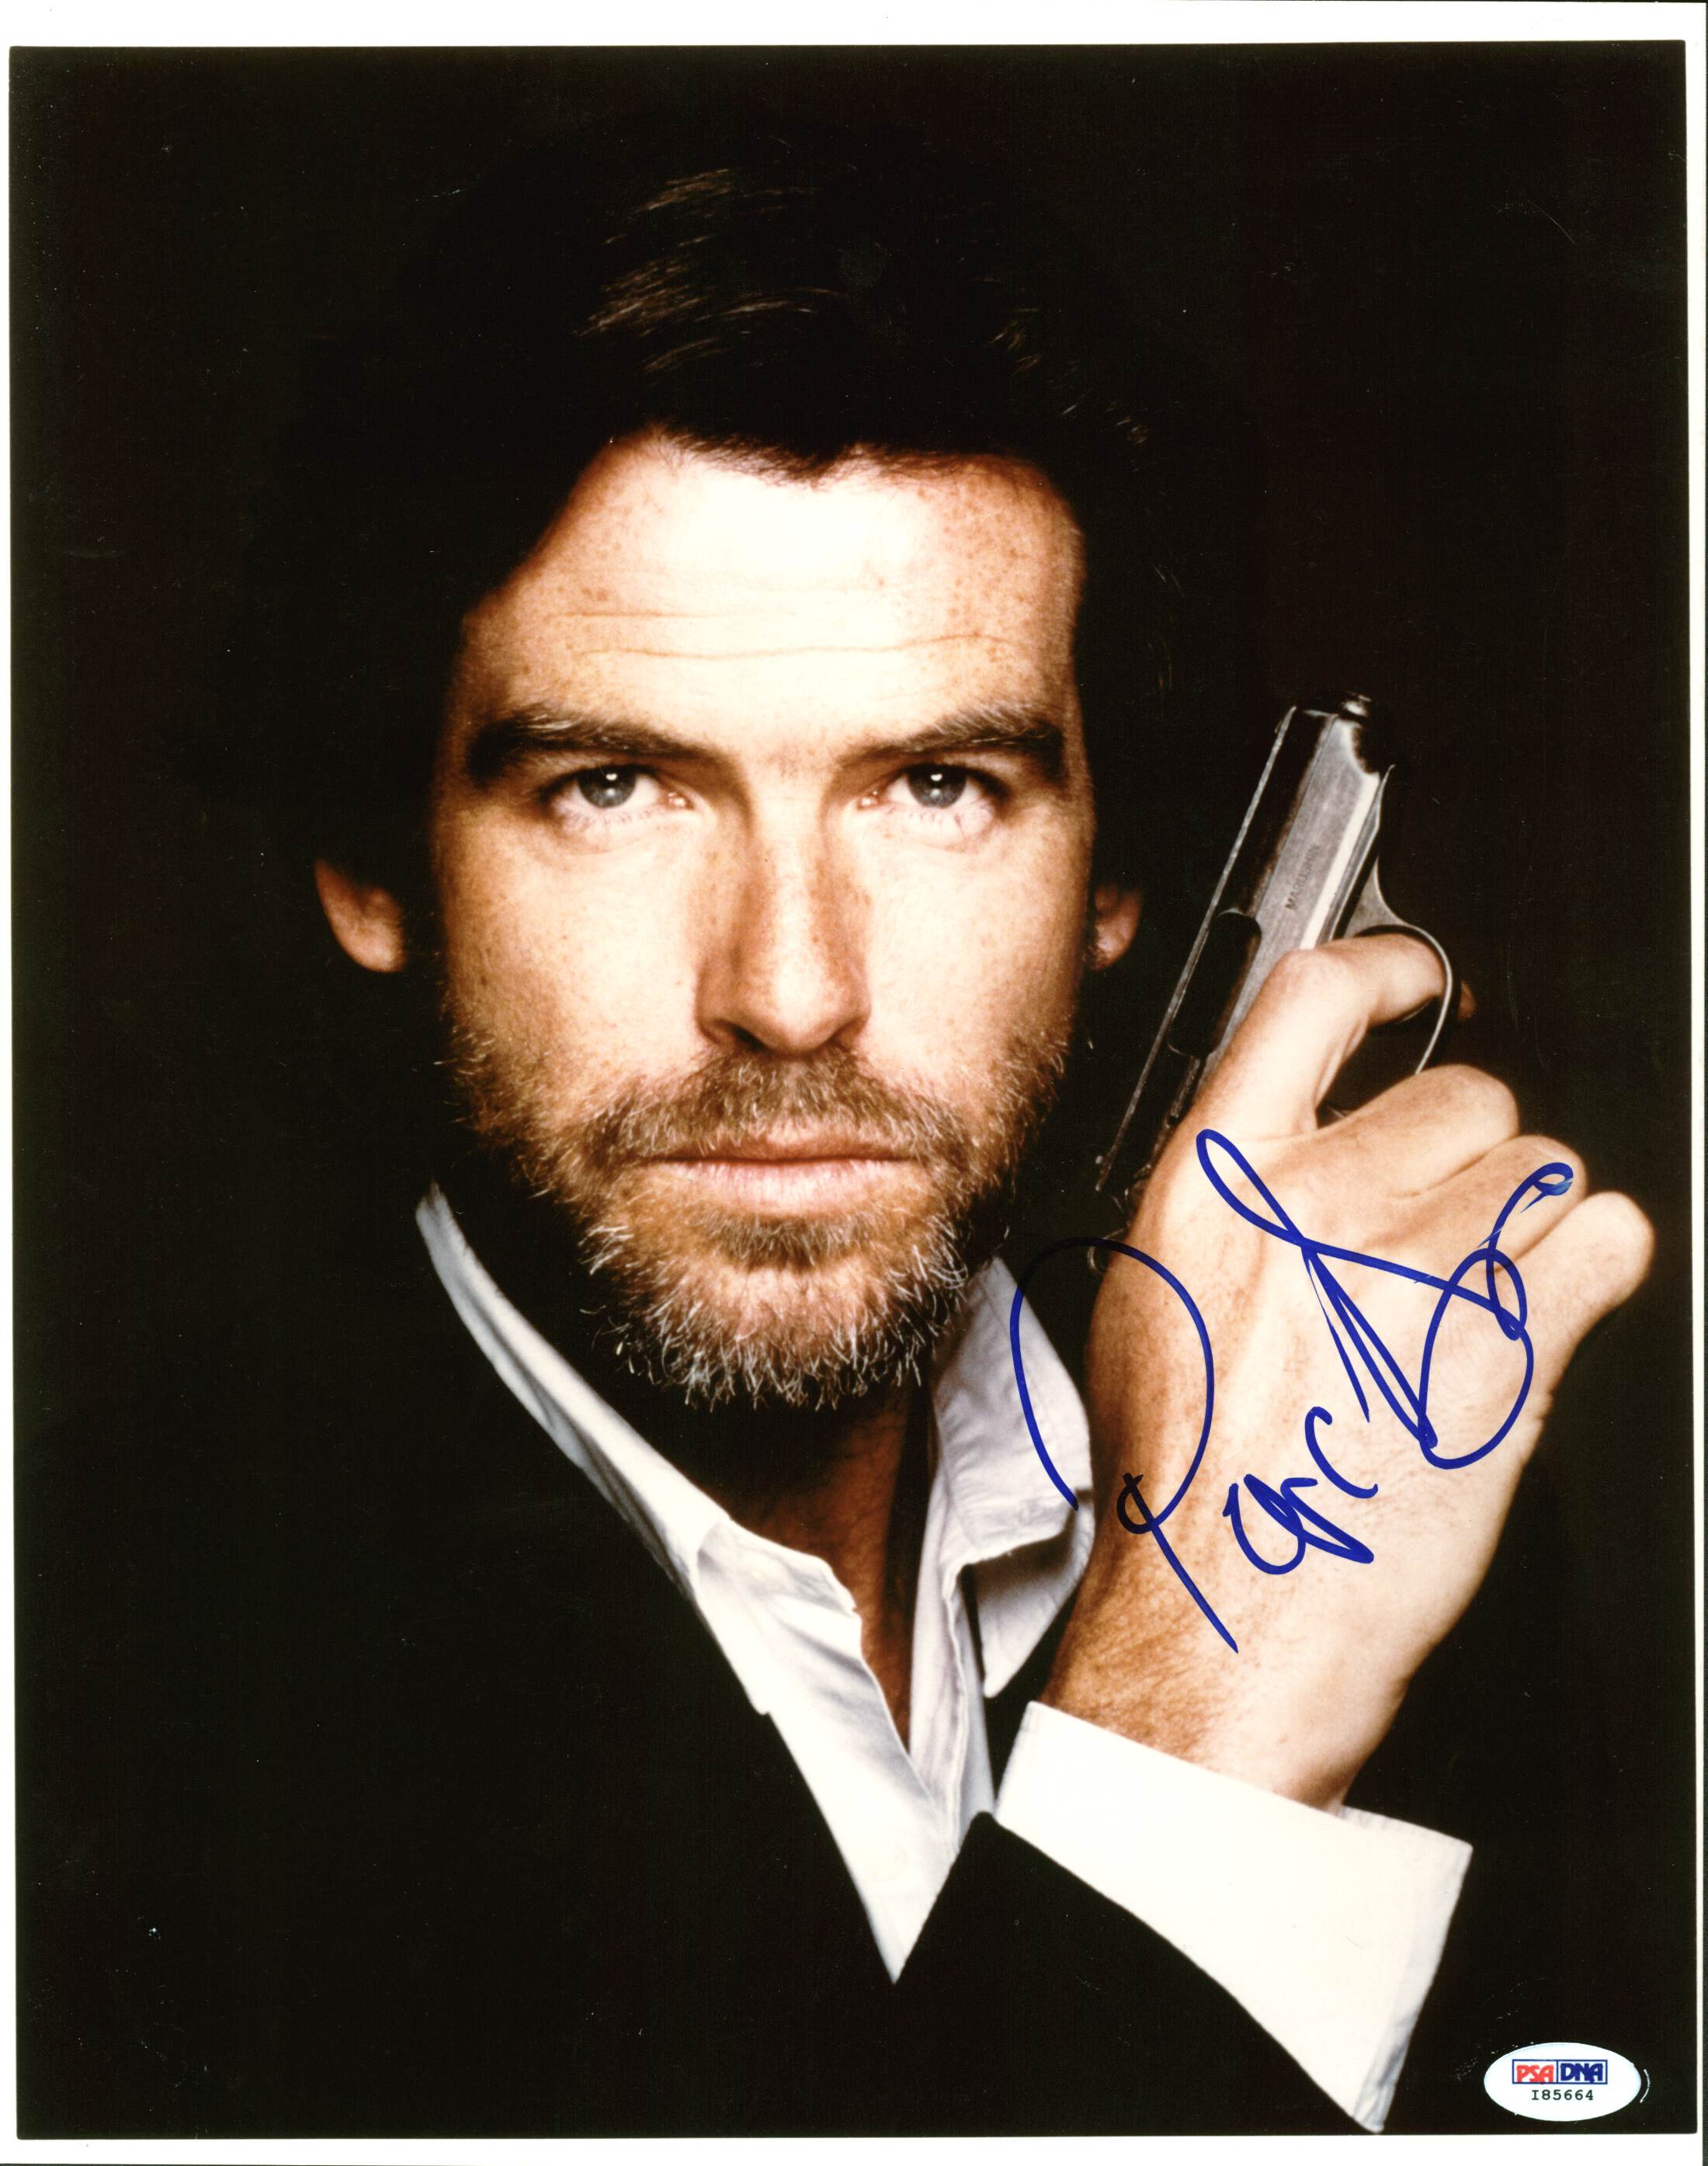 Pierce Brosnan James Bond 007 Authentic Signed 11X14 Photo PSA/DNA #I85664